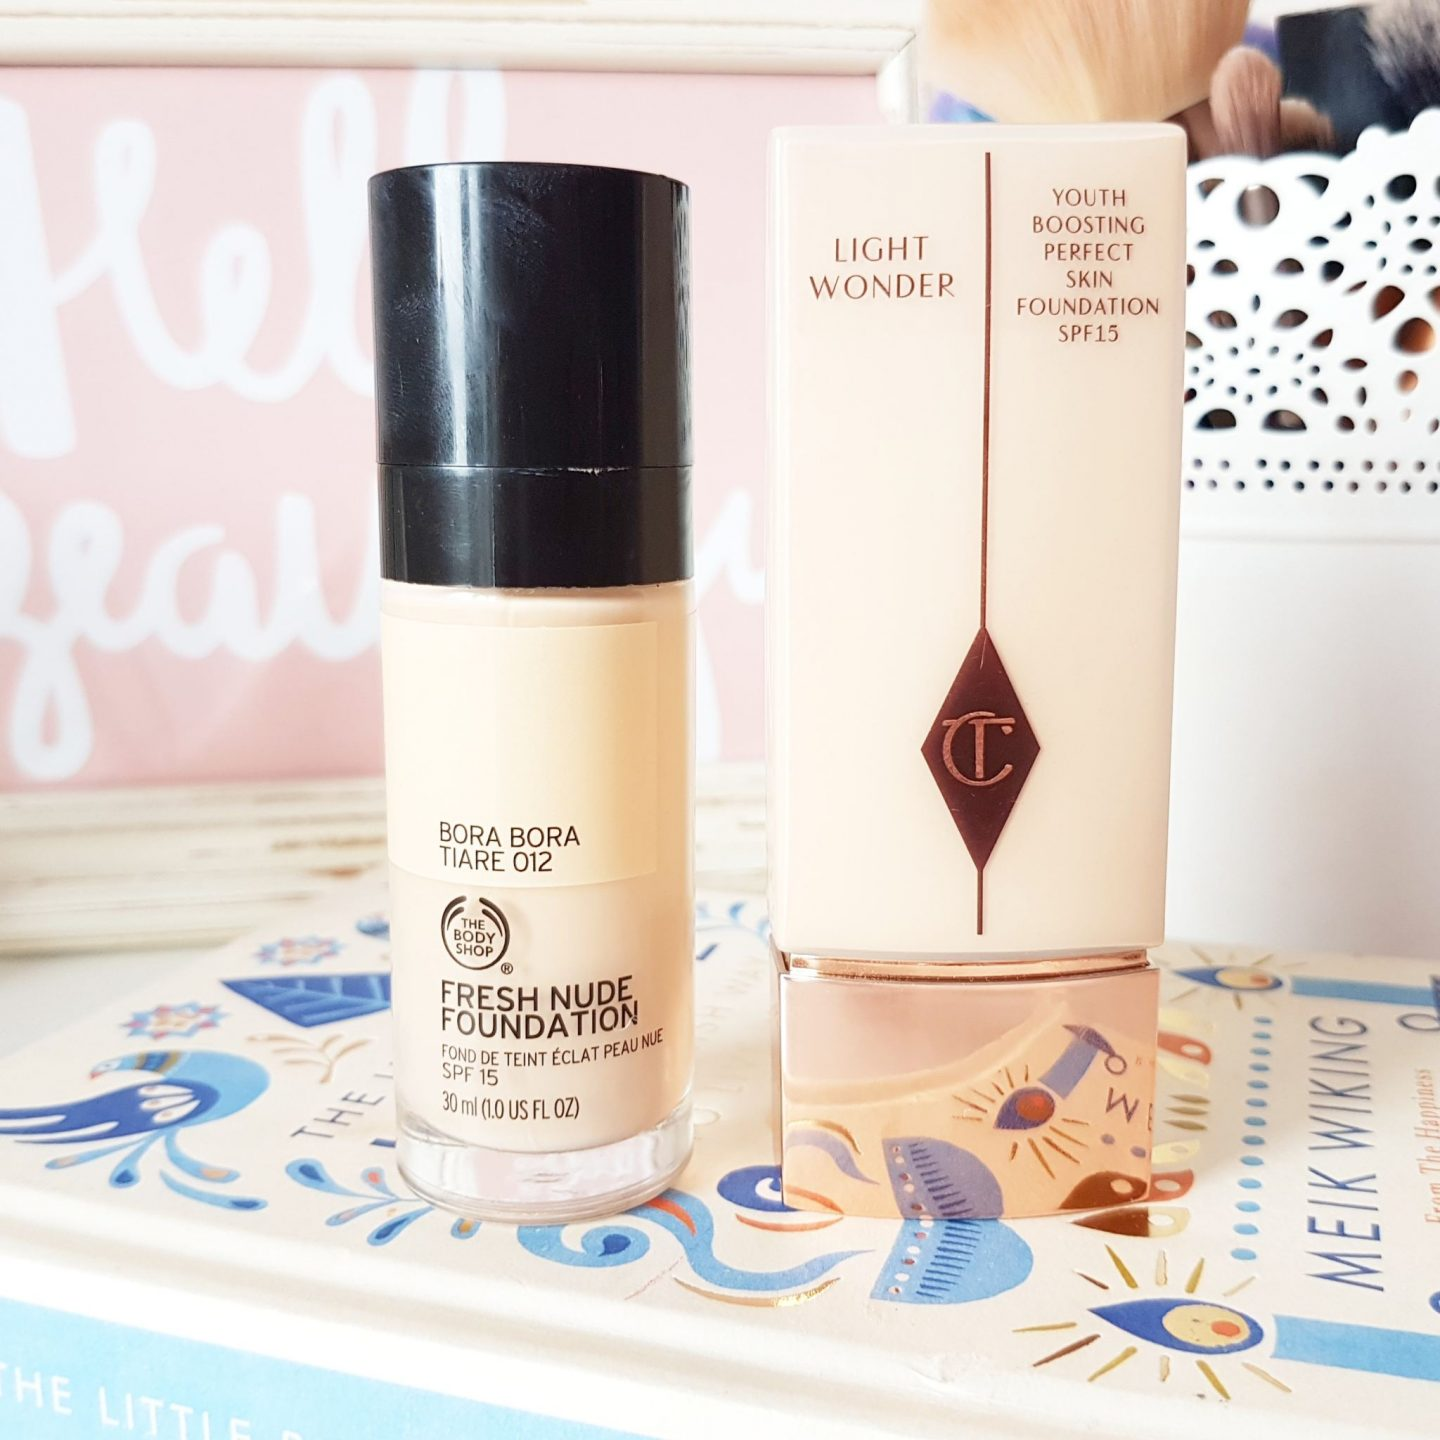 The Body Shop Fresh Nude Foundation | A Charlotte Tilbury Dupe?